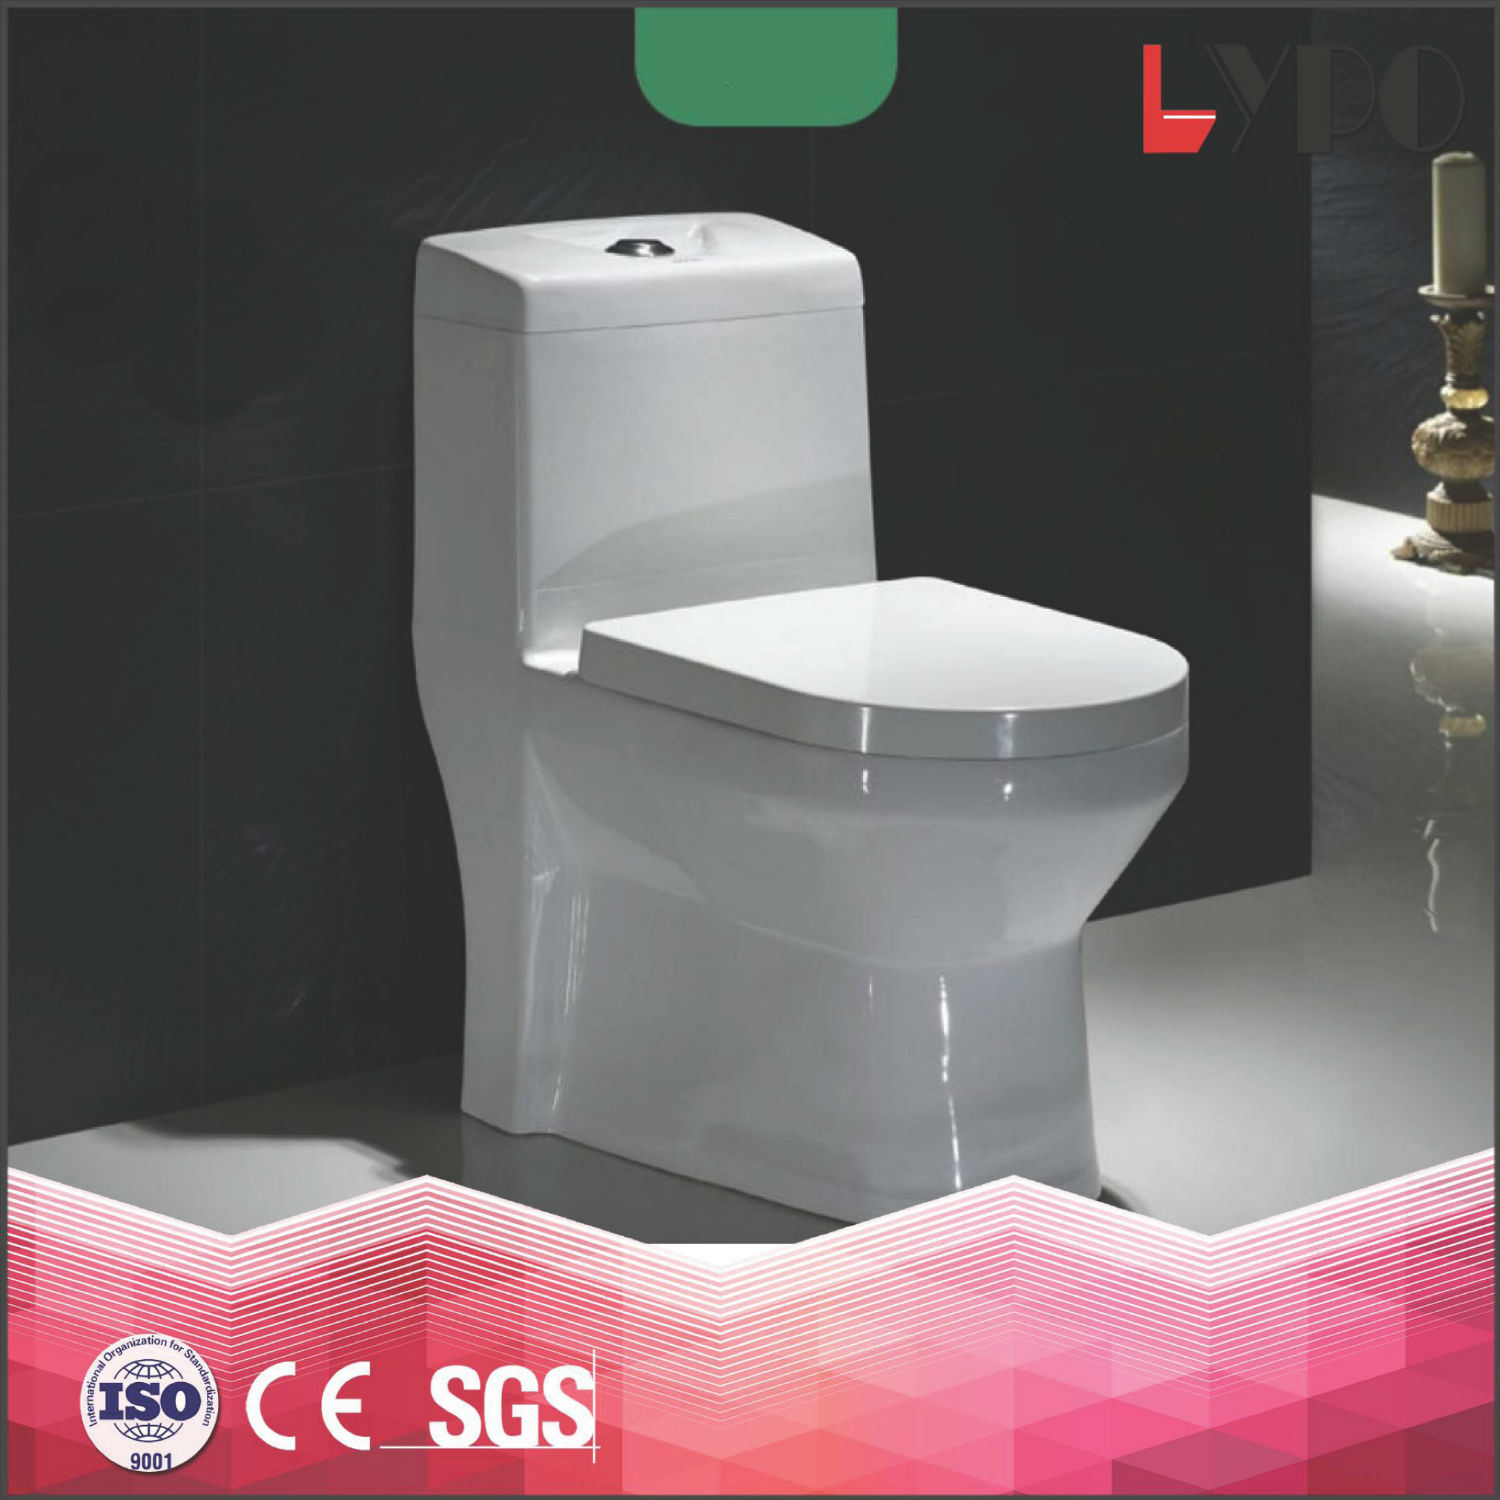 China Lp1311 Sanitary Ware Toilet Manufacturer, Orchid Shape One ...